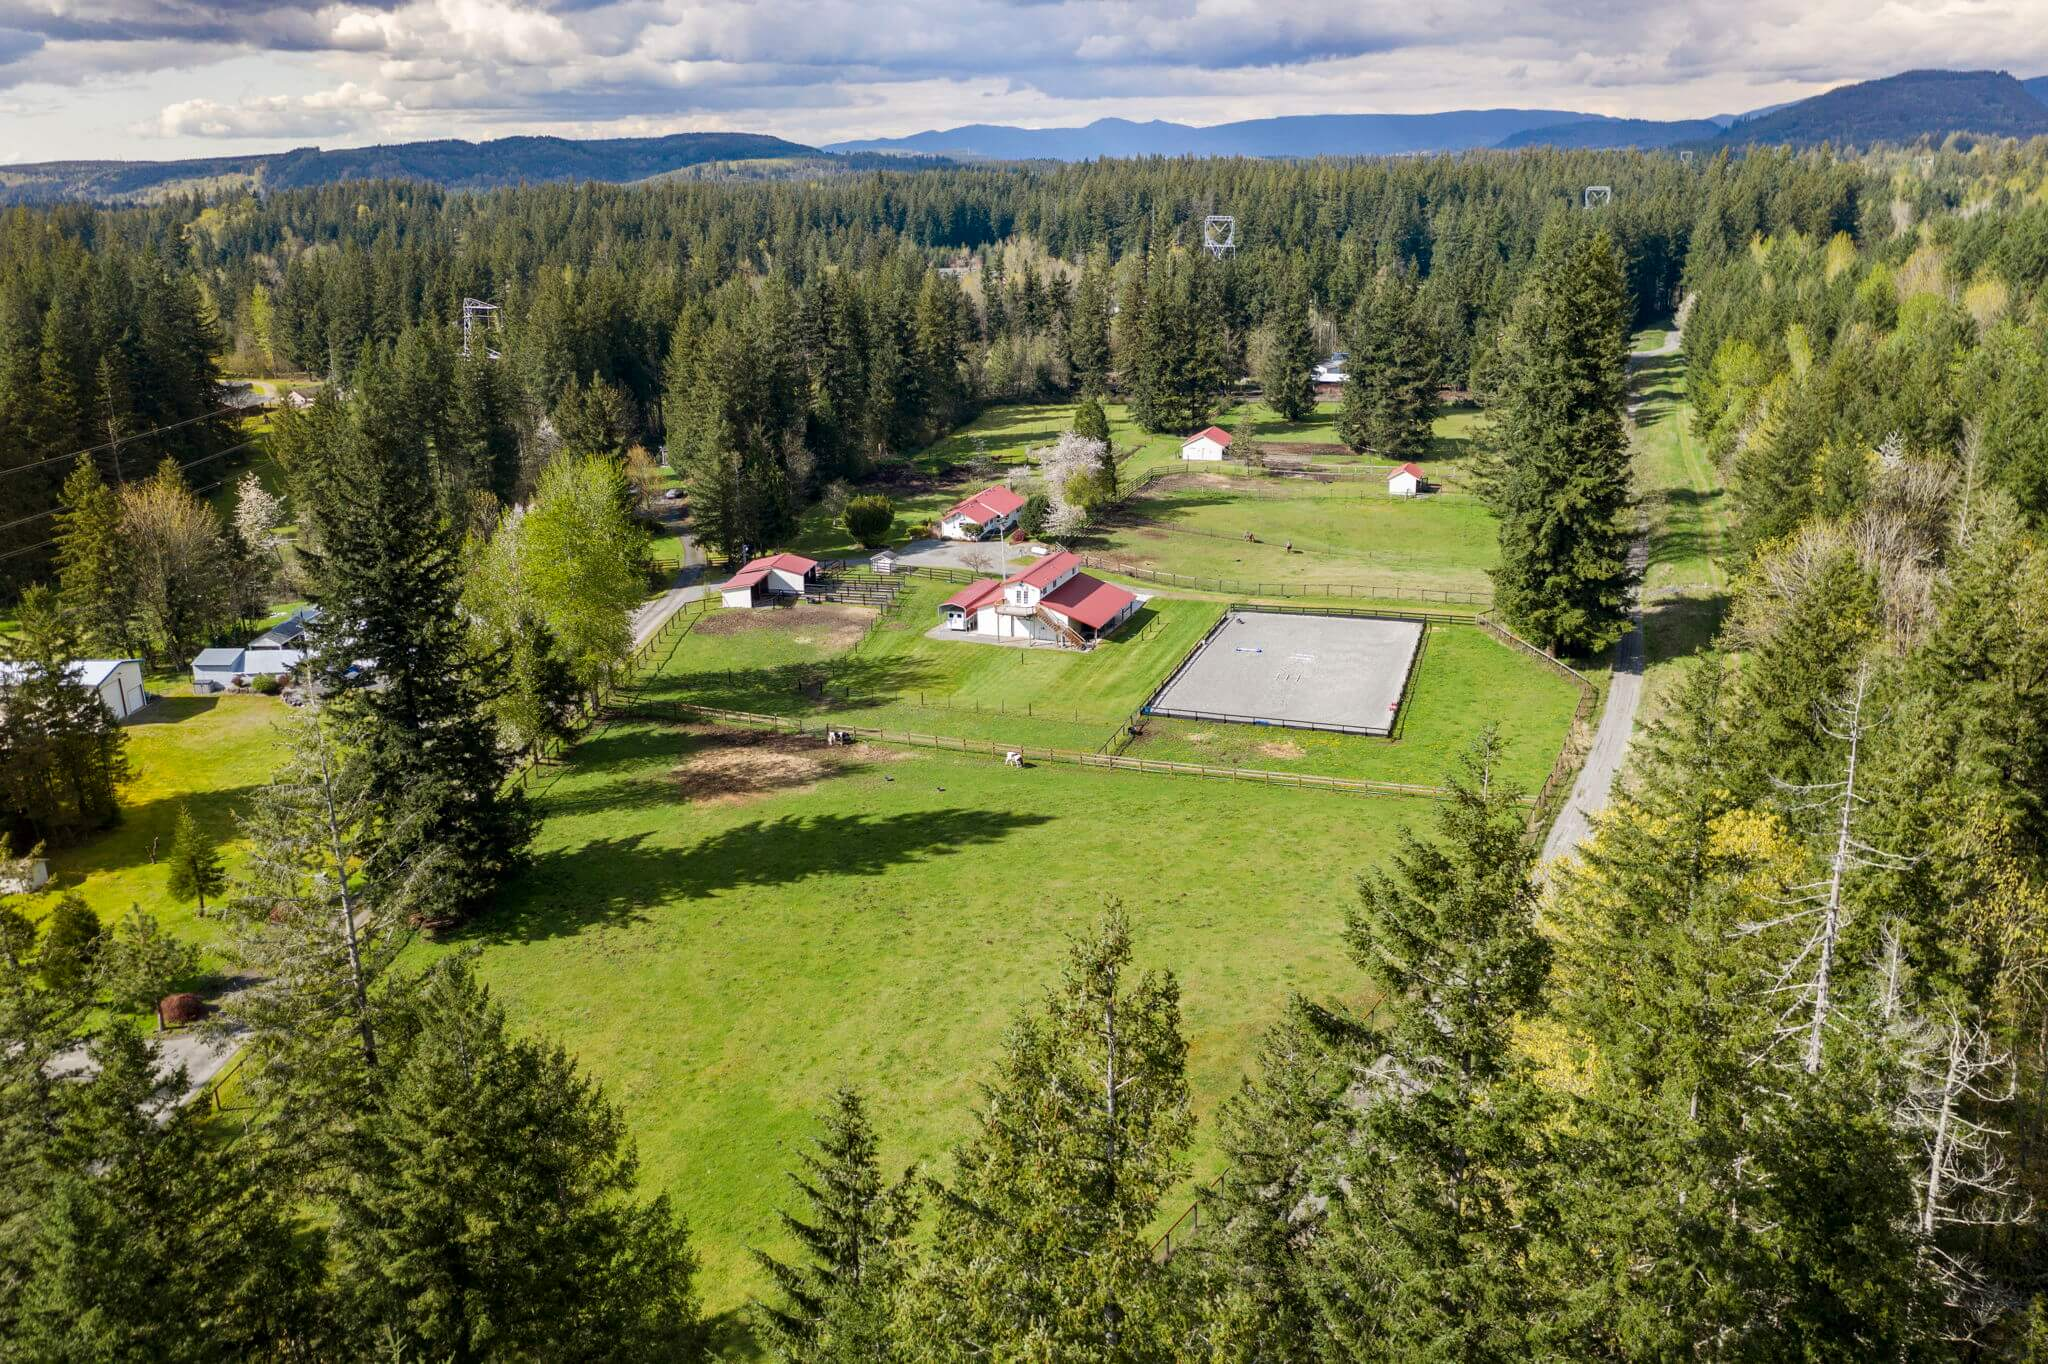 The farm includes a main house, a guest apartment, four barns and an outdoor arena